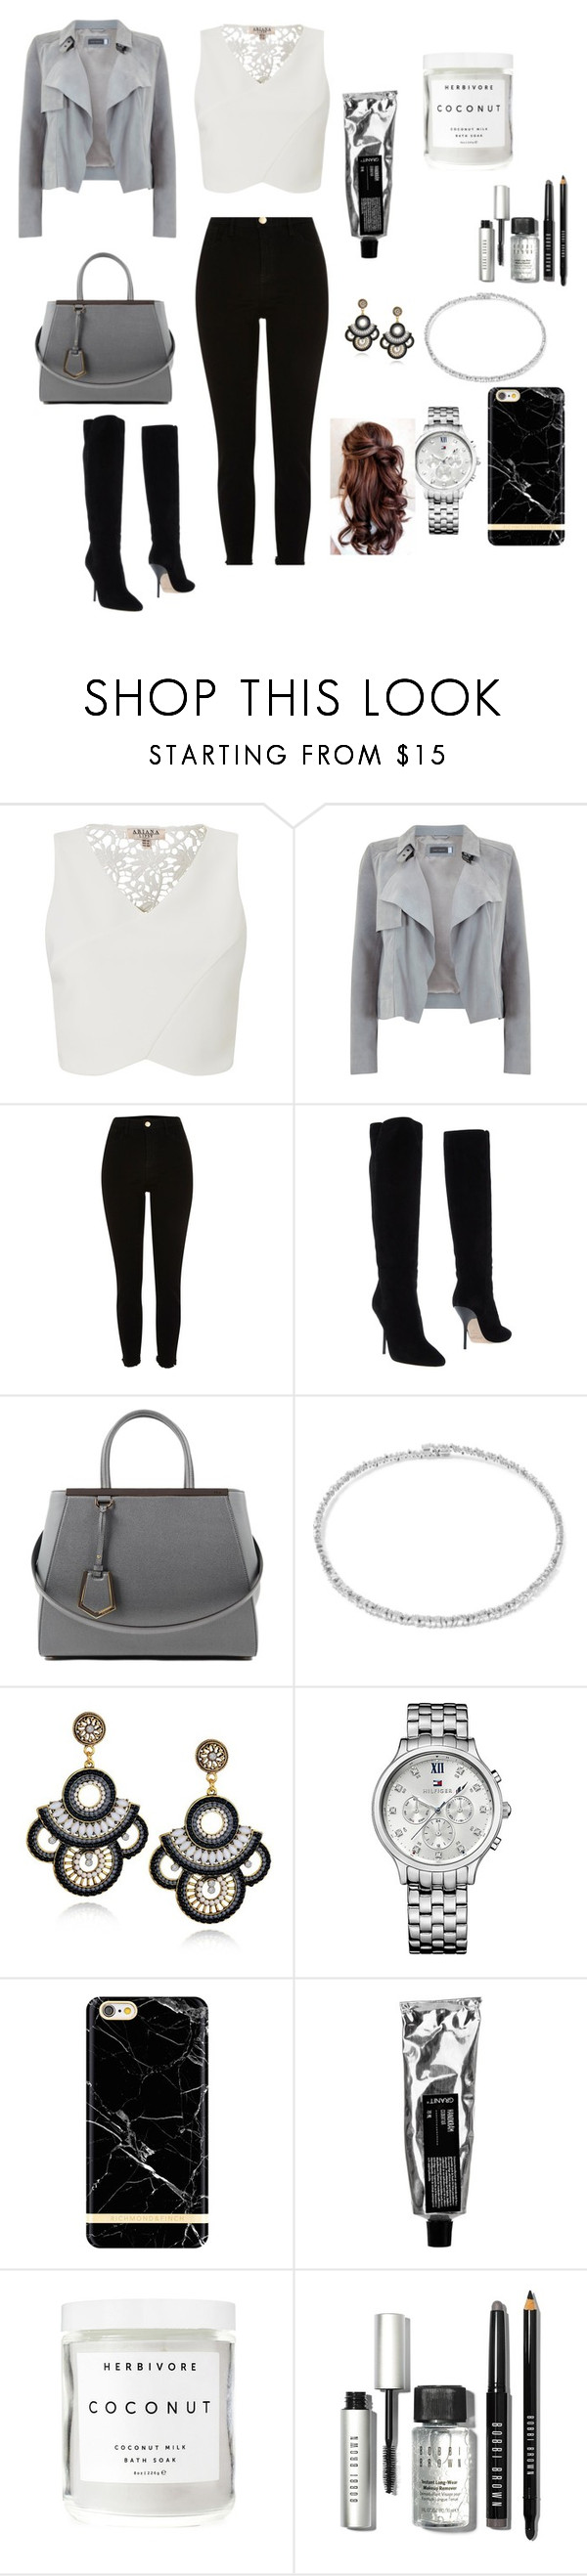 """""""Sin título #103"""" by laura-bernaez ❤ liked on Polyvore featuring Lipsy, Mint Velvet, River Island, Jimmy Choo, Fendi, Suzanne Kalan, Tommy Hilfiger, Herbivore Botanicals and Bobbi Brown Cosmetics"""